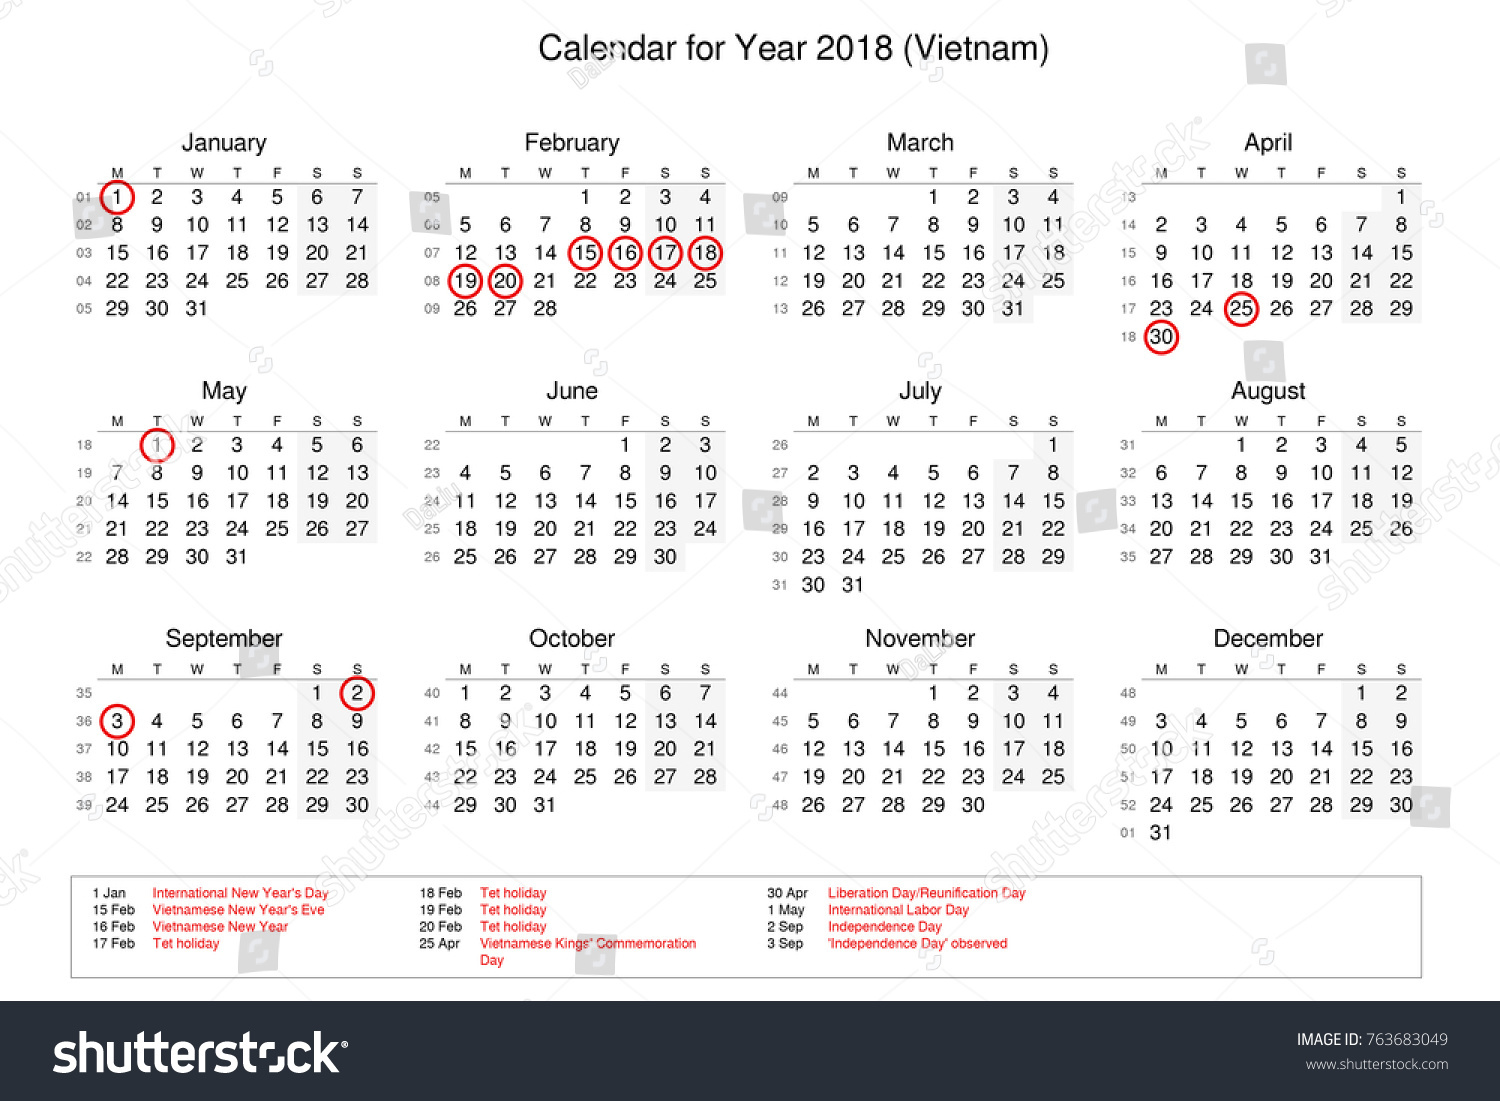 calendar of year 2018 with public holidays and bank holidays for vietnam